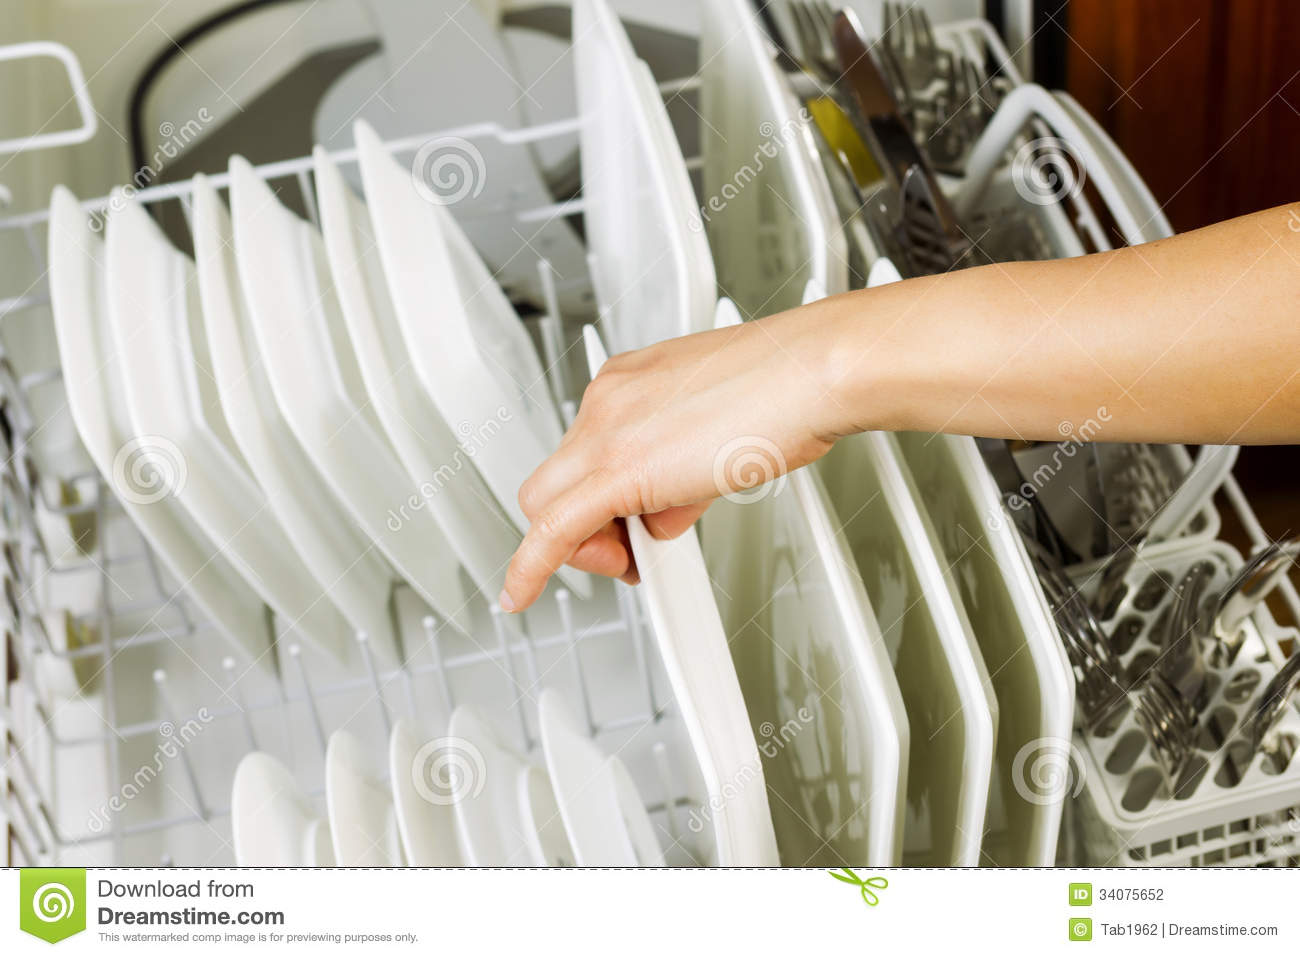 Dishes In Dishwasher ~ Loading dinner plates into the lower dish rack of